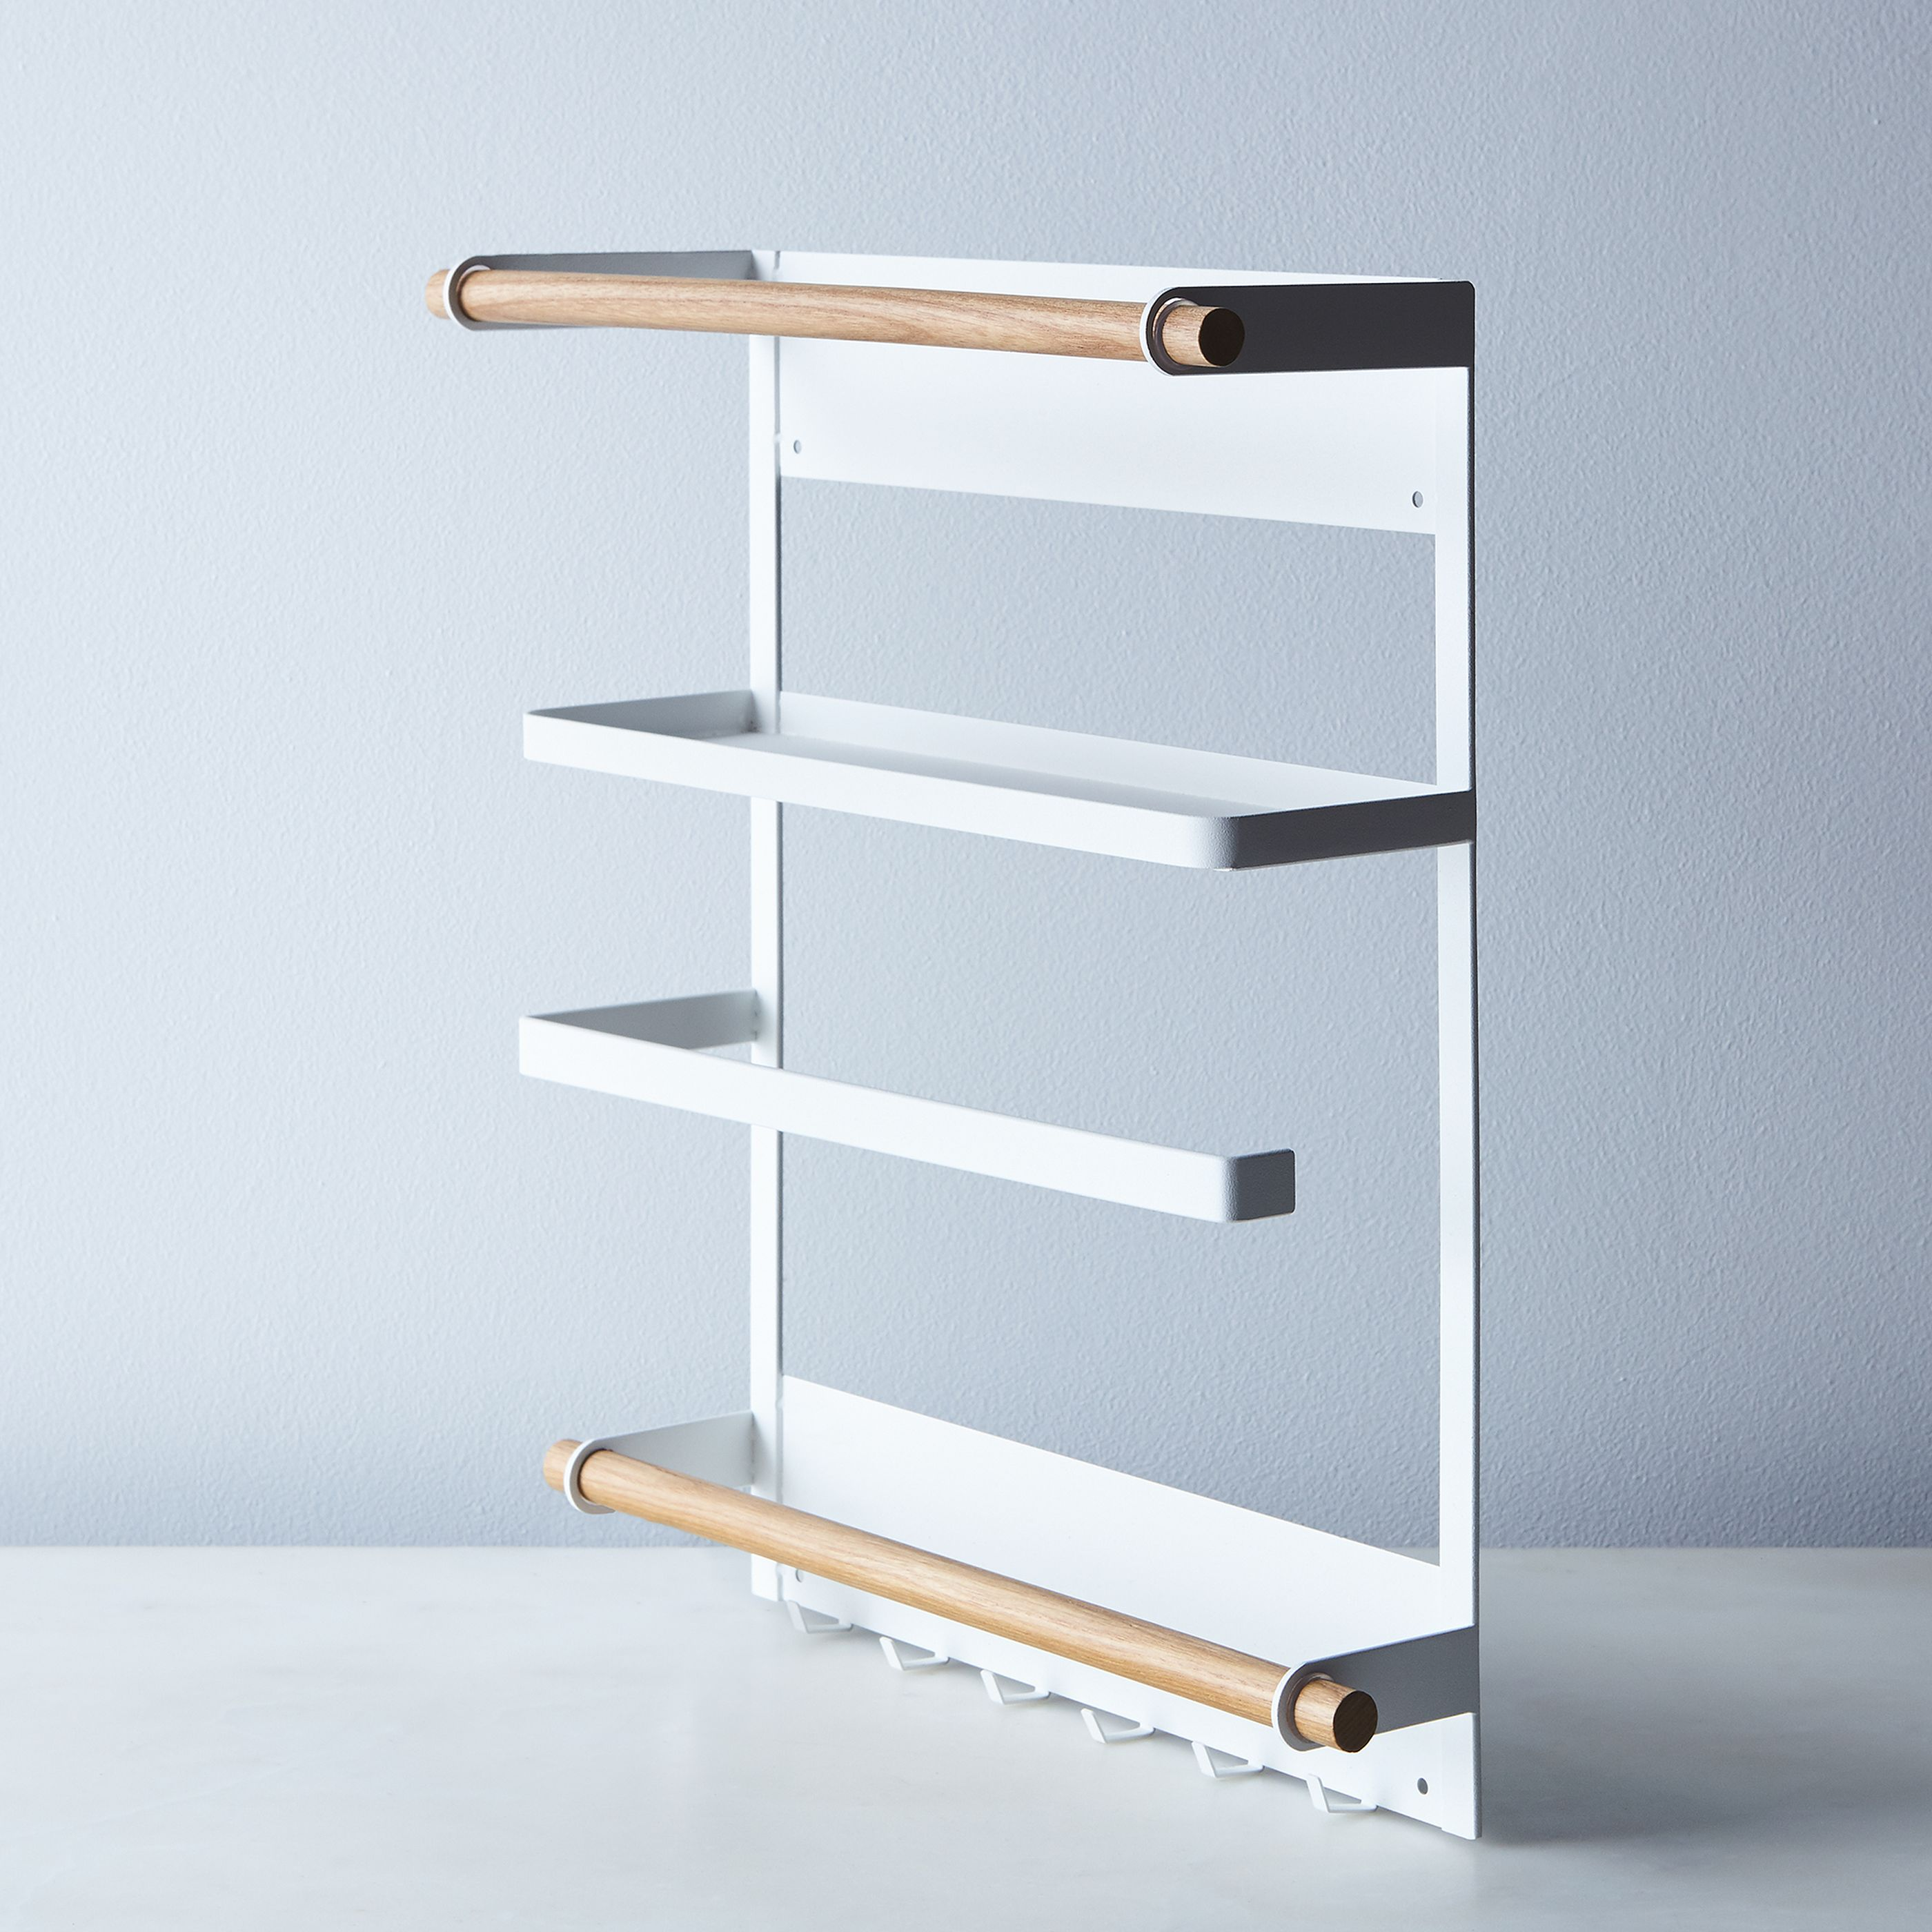 Steel & Wood Magnetic Refrigerator Rack on Food52